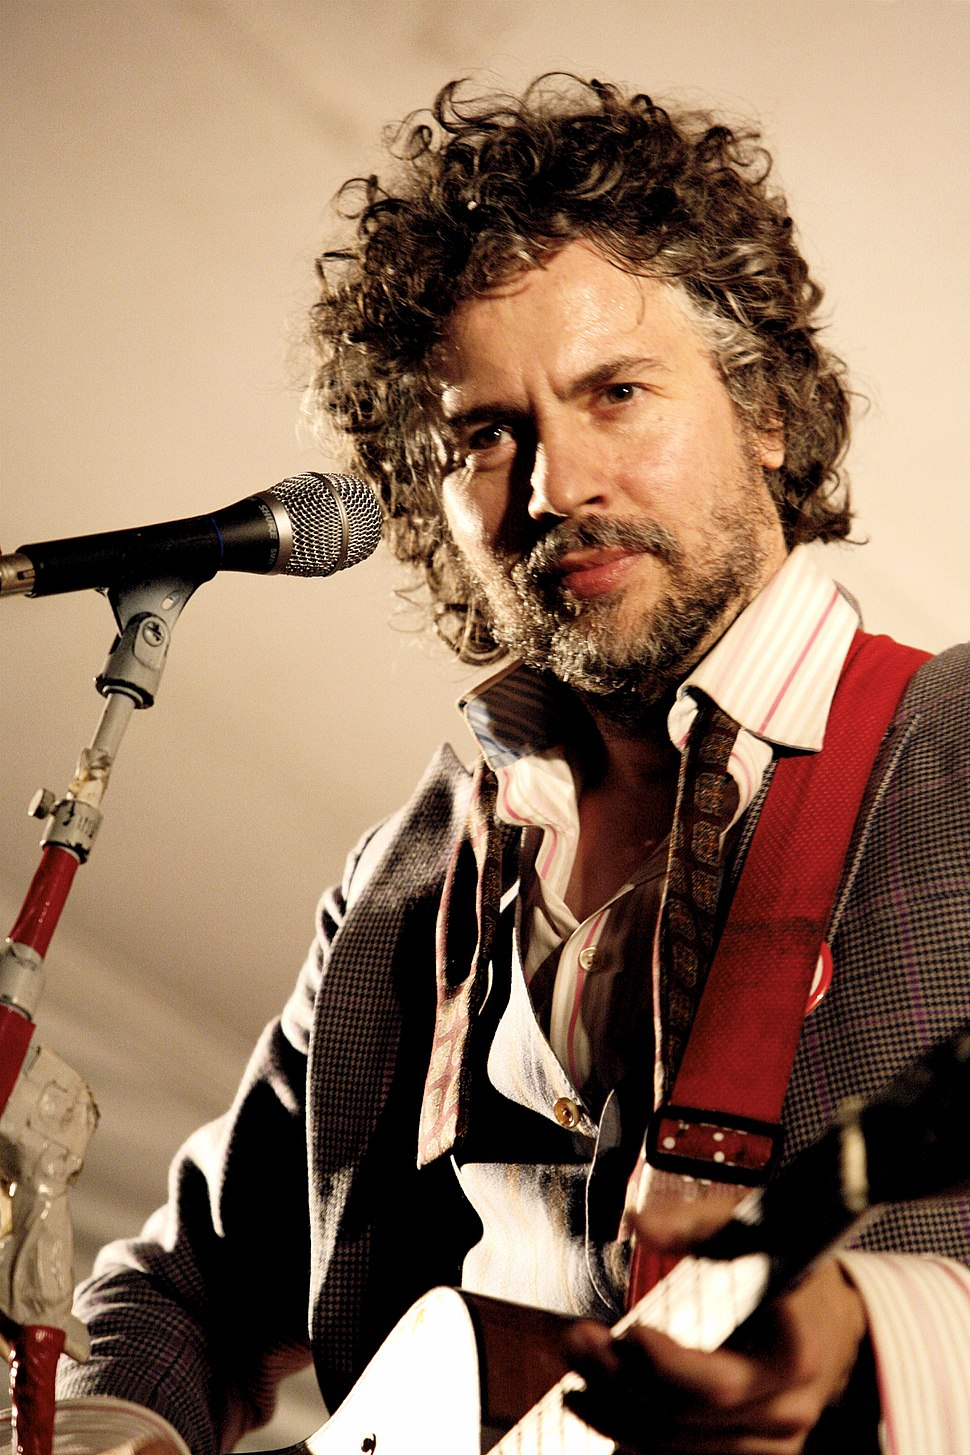 Wayne Coyne from the Flaming Lips photographed by Kris Krug